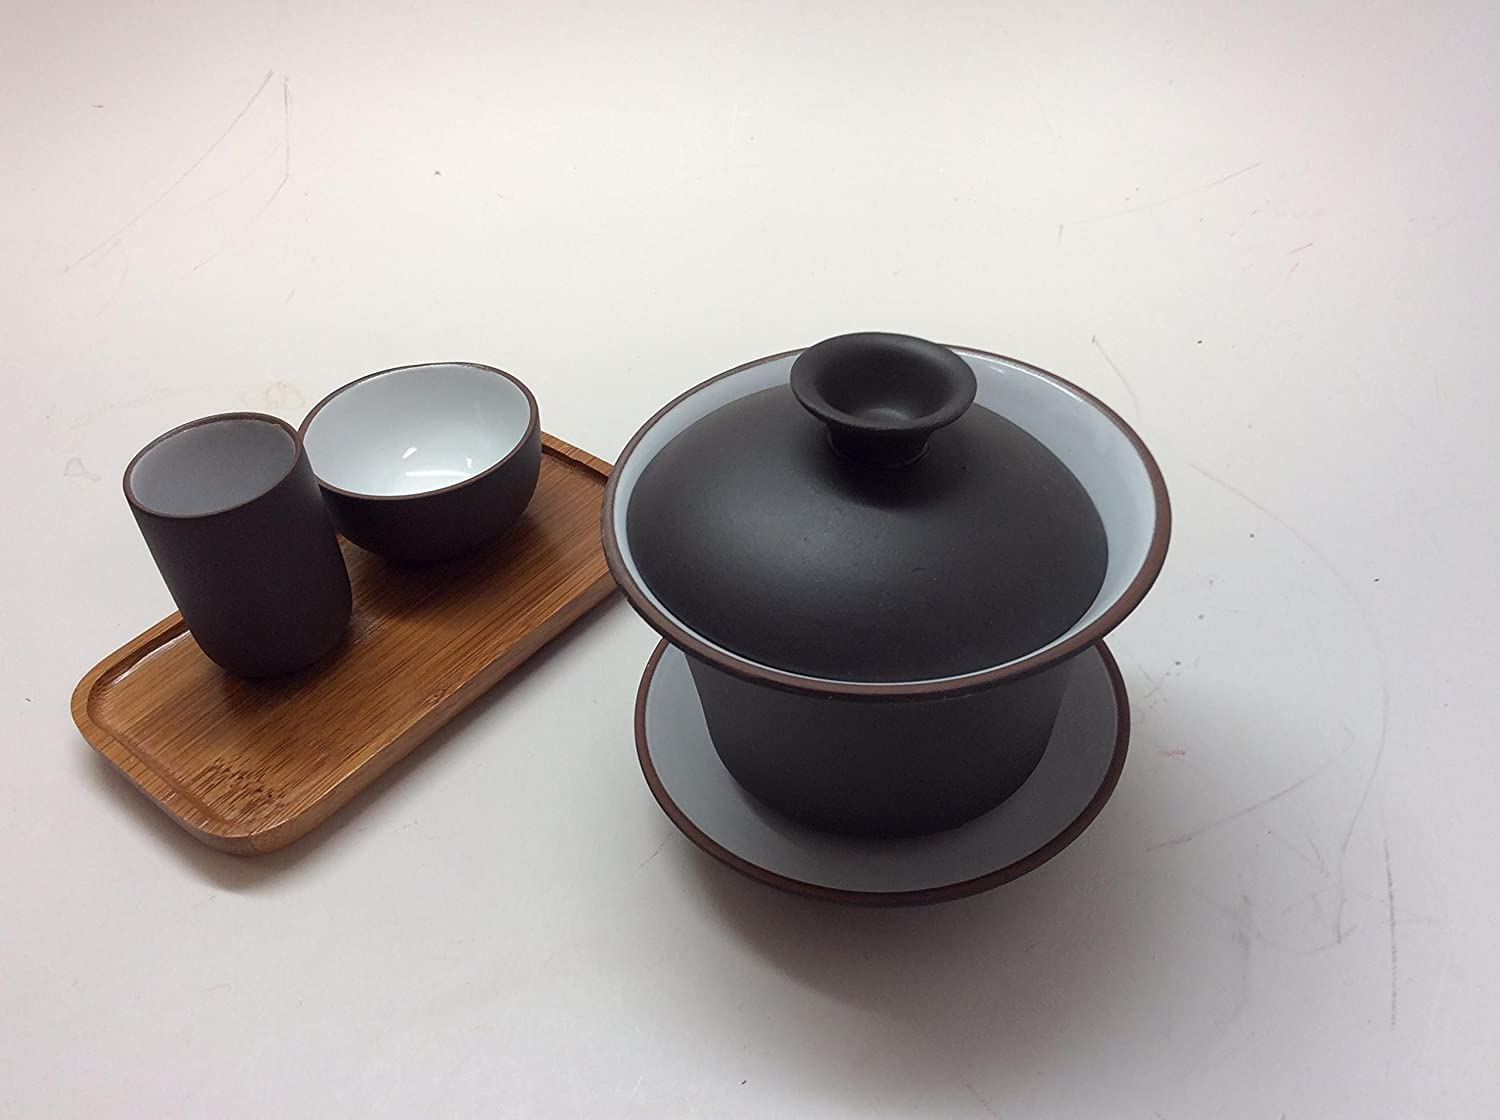 Gaiwan with Tasting Cups by Music City Tea